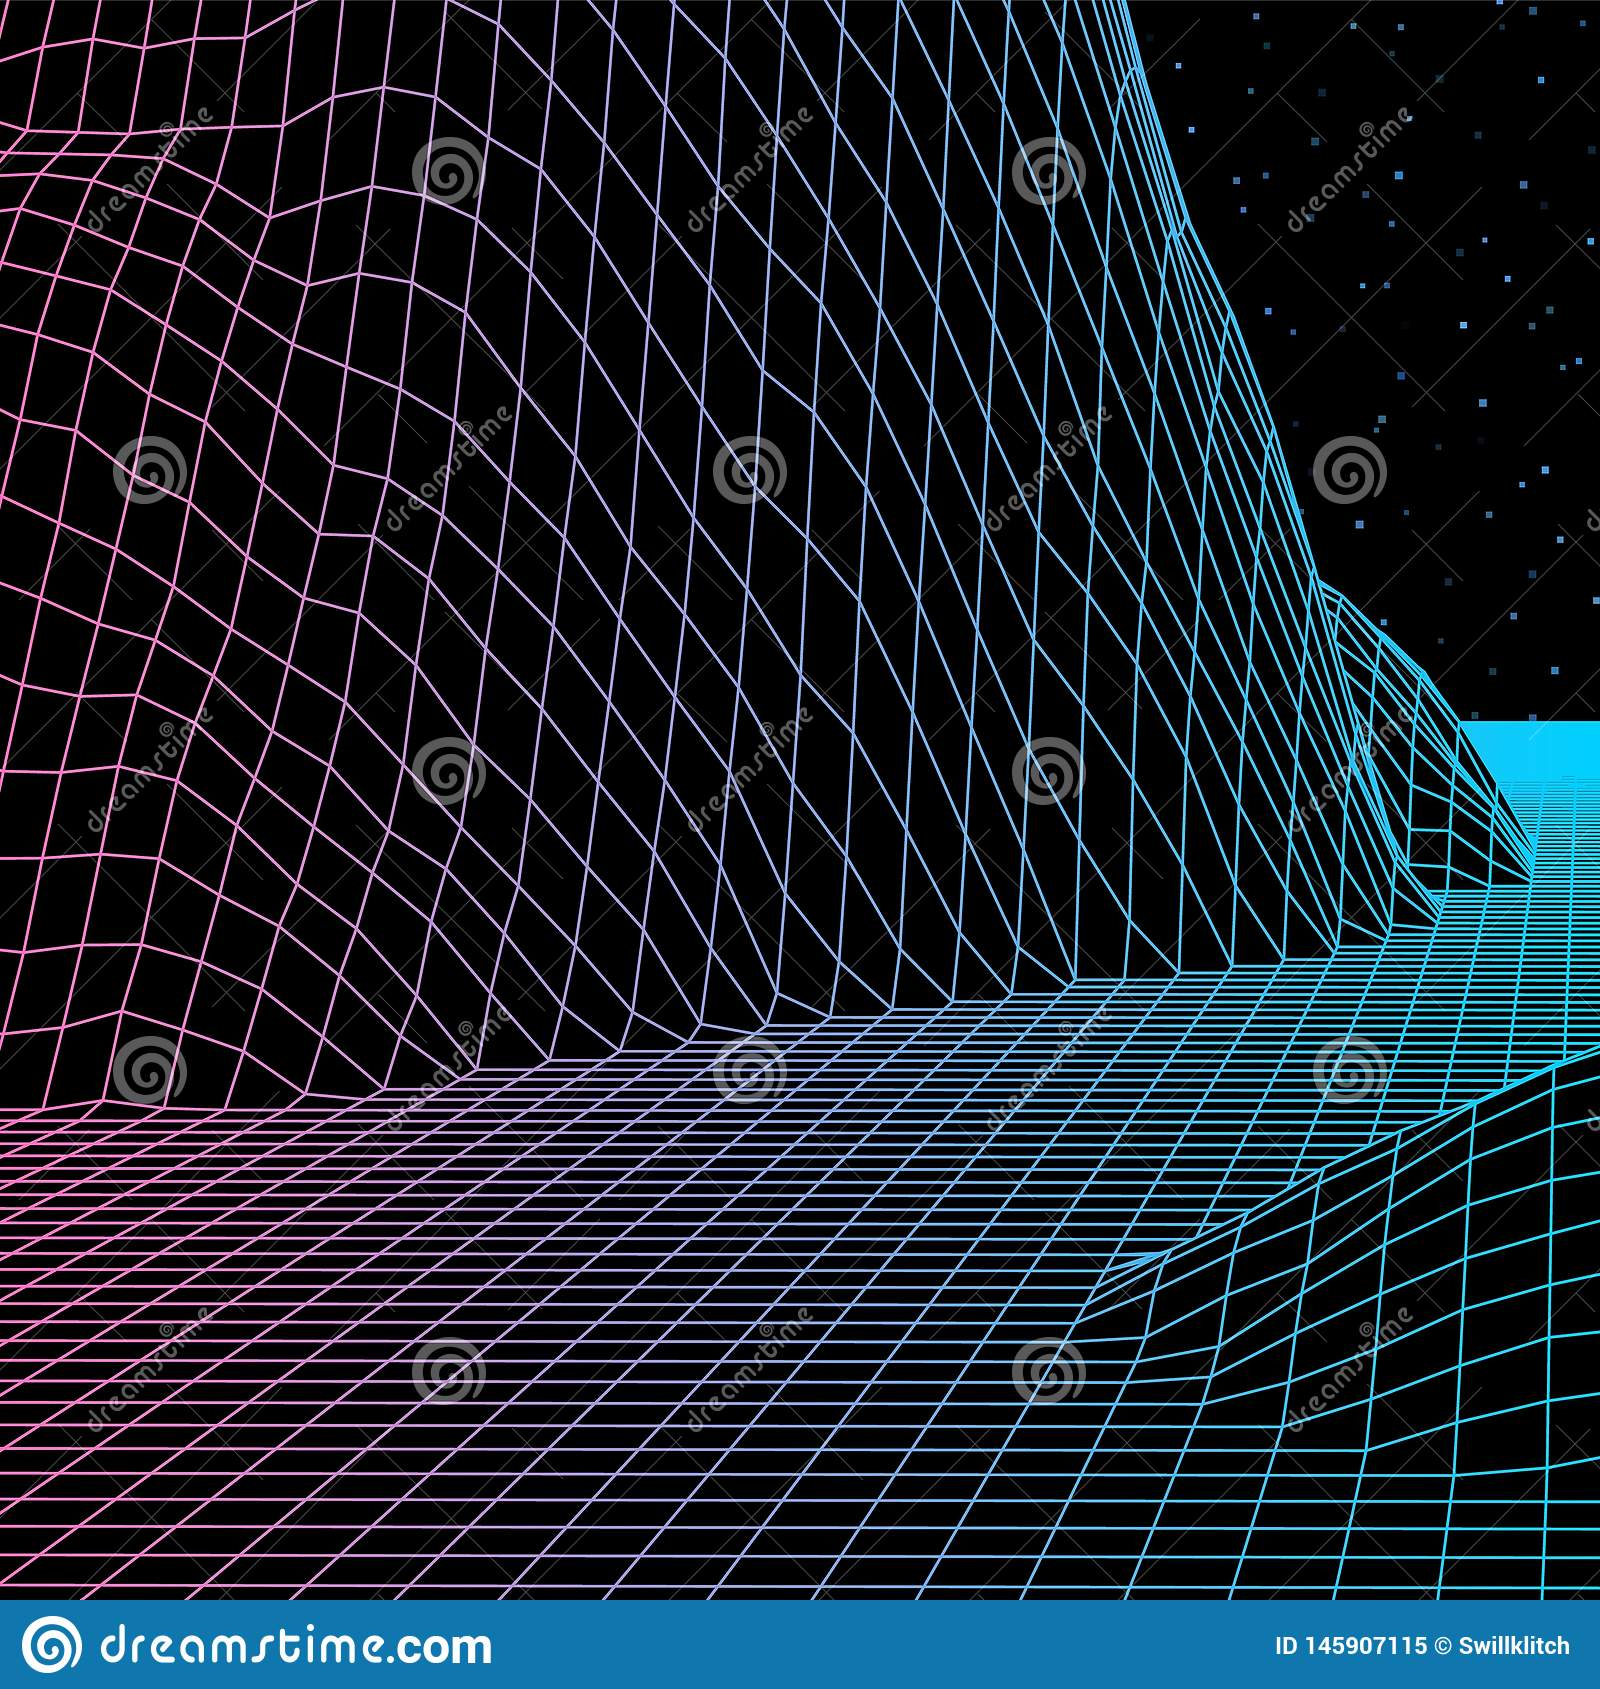 Landscape with wireframe grid of 80s styled retro computer game or science background 3d structure with mountains